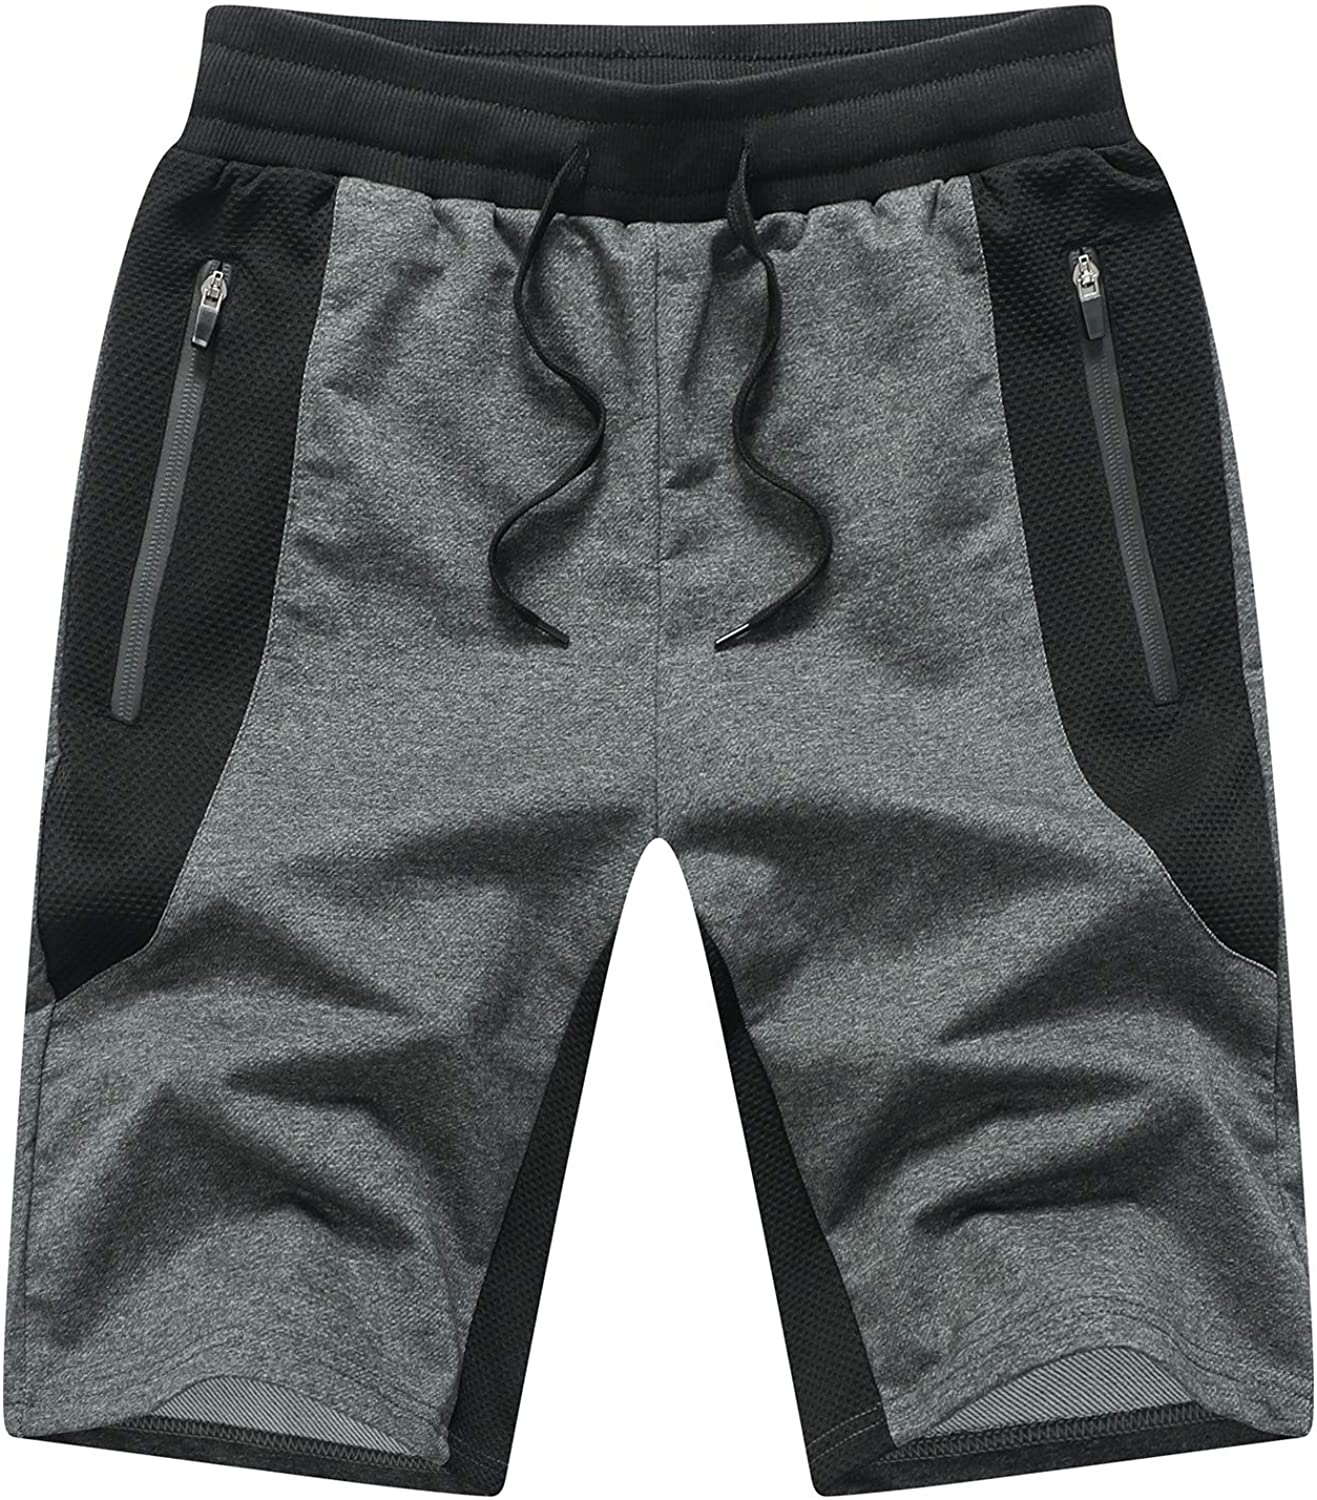 Max 70% OFF Tansozer Great interest Mens Athletic Shorts Zip Pockets with